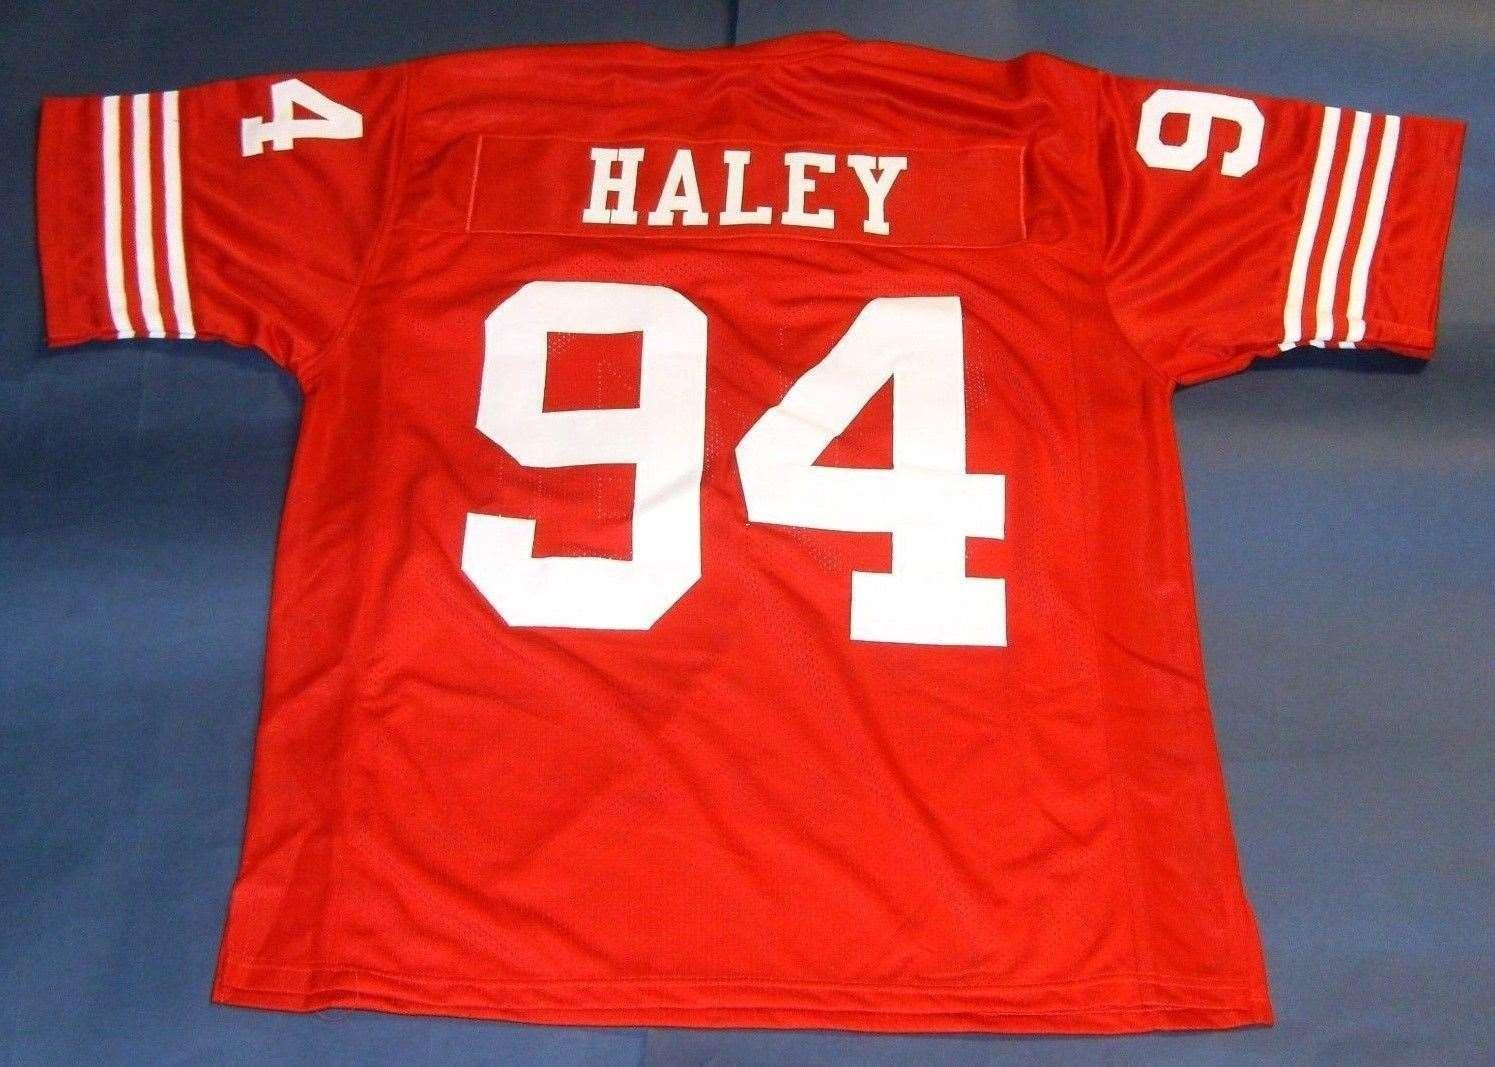 Rétro pas cher # 94 CHARLES HALEY CUSTOM JERSEY rouge coudre Top Hommes S-5XL, 6XL maillots de football